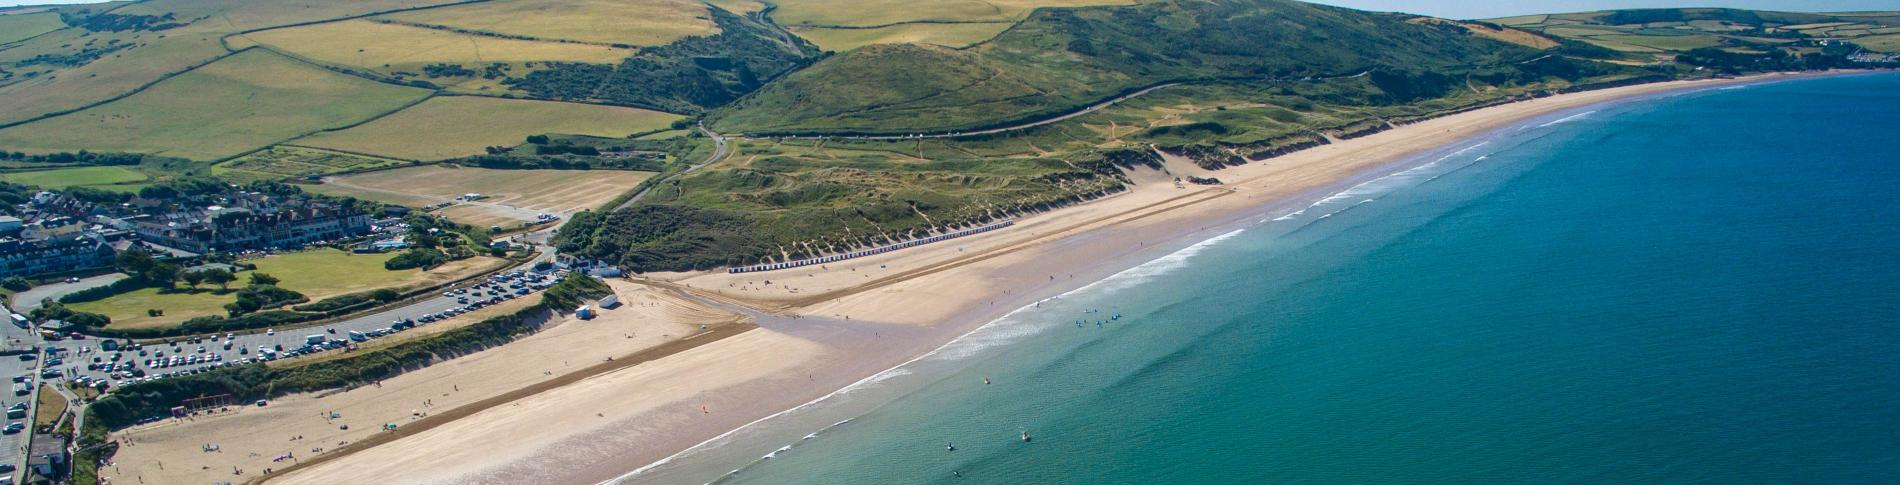 Woolacombe Beach from the air